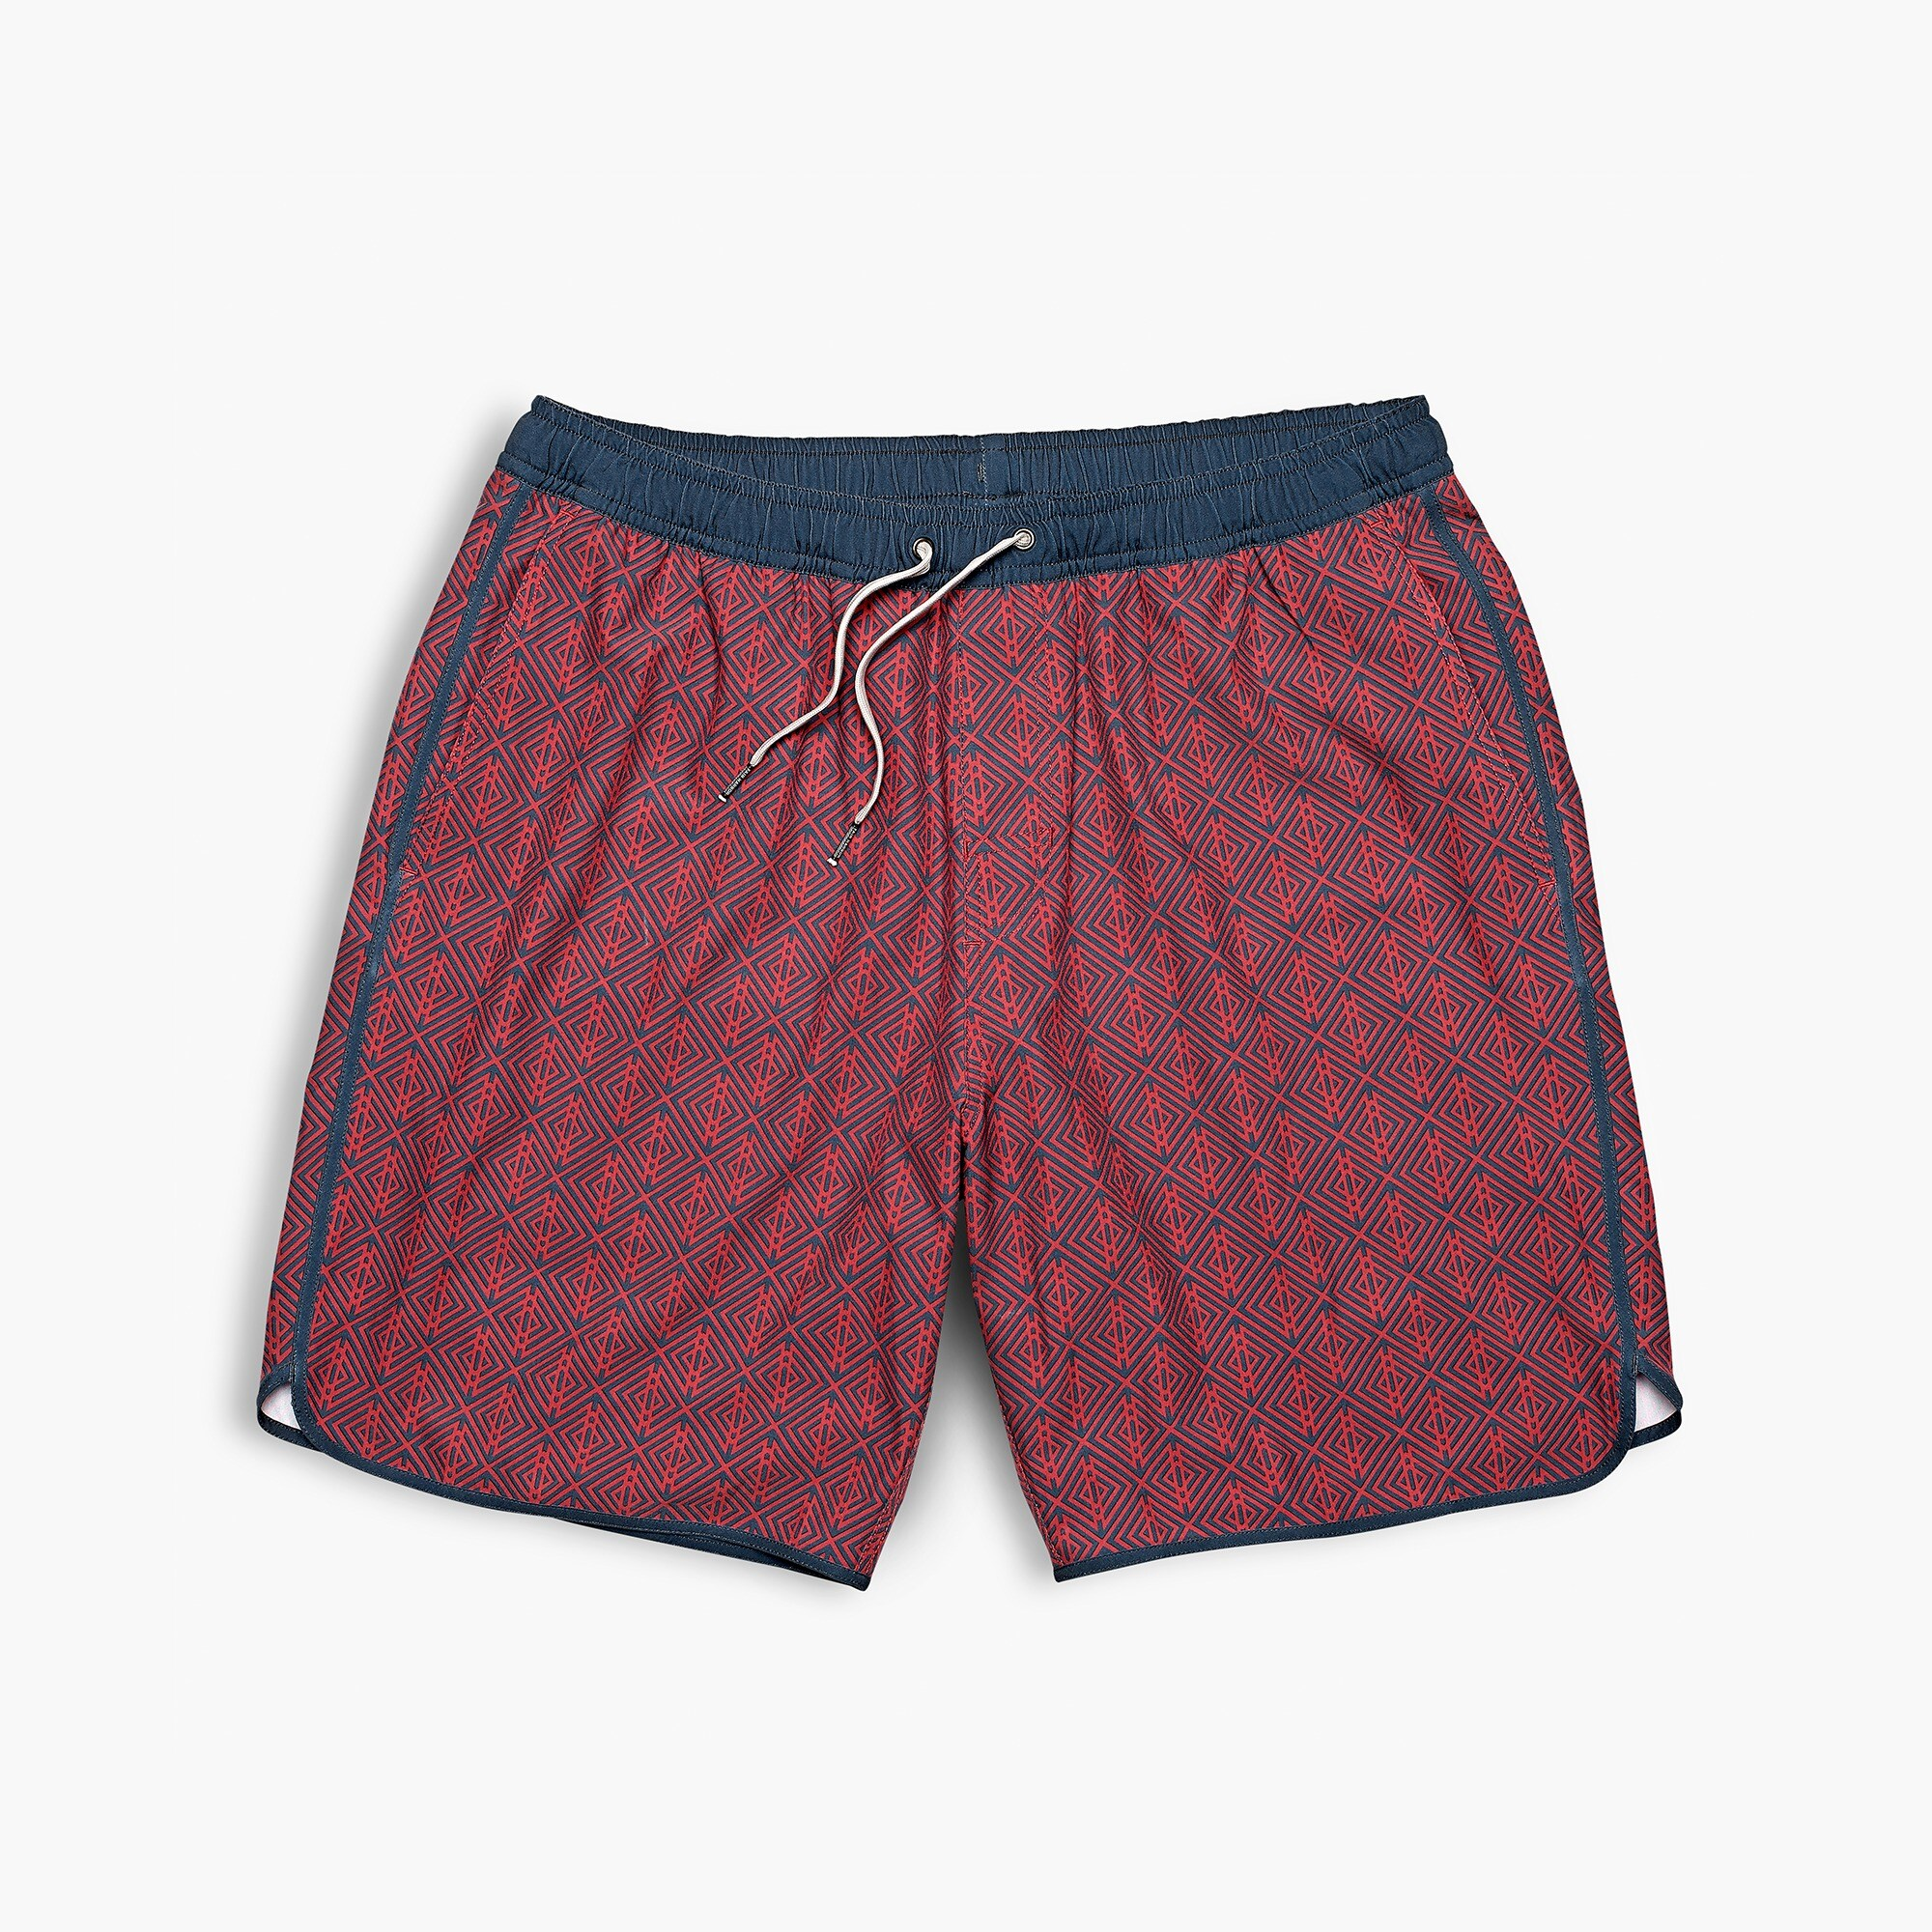 mens Fair Harbor™ anchor trunk